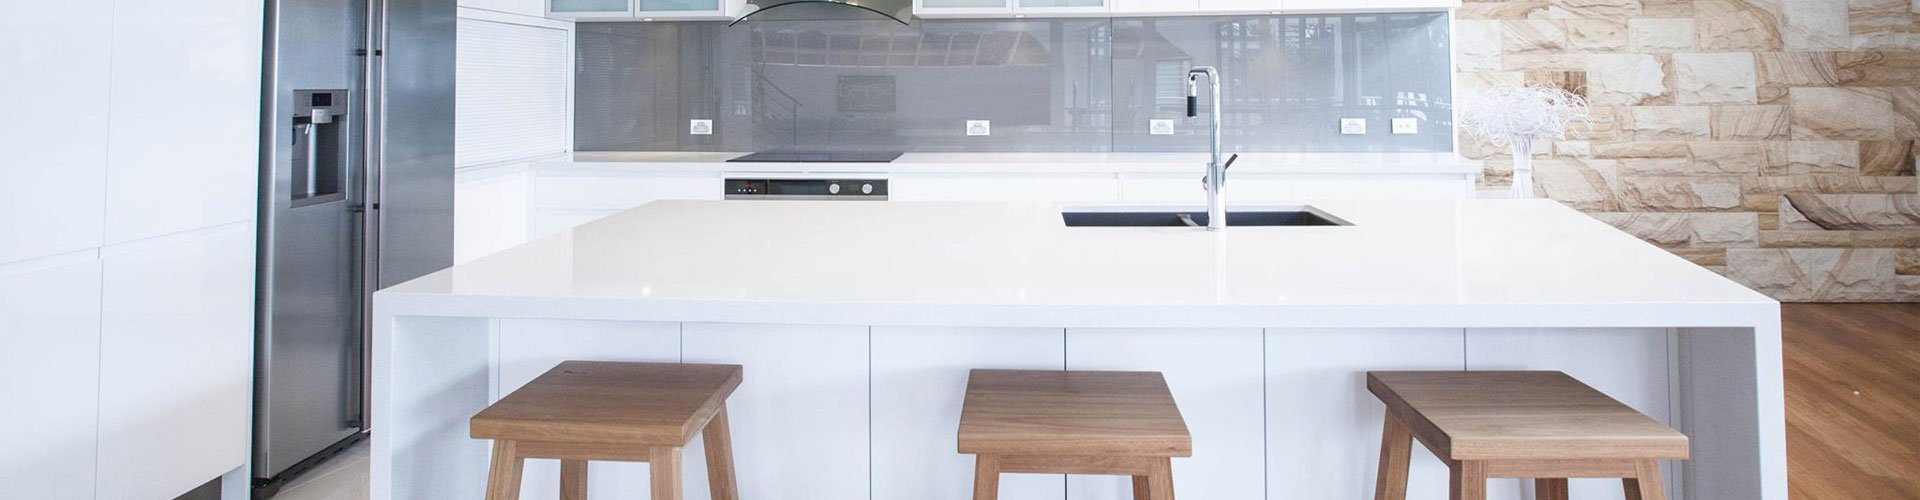 cabinetrysolutions-award-winning-projects-hero